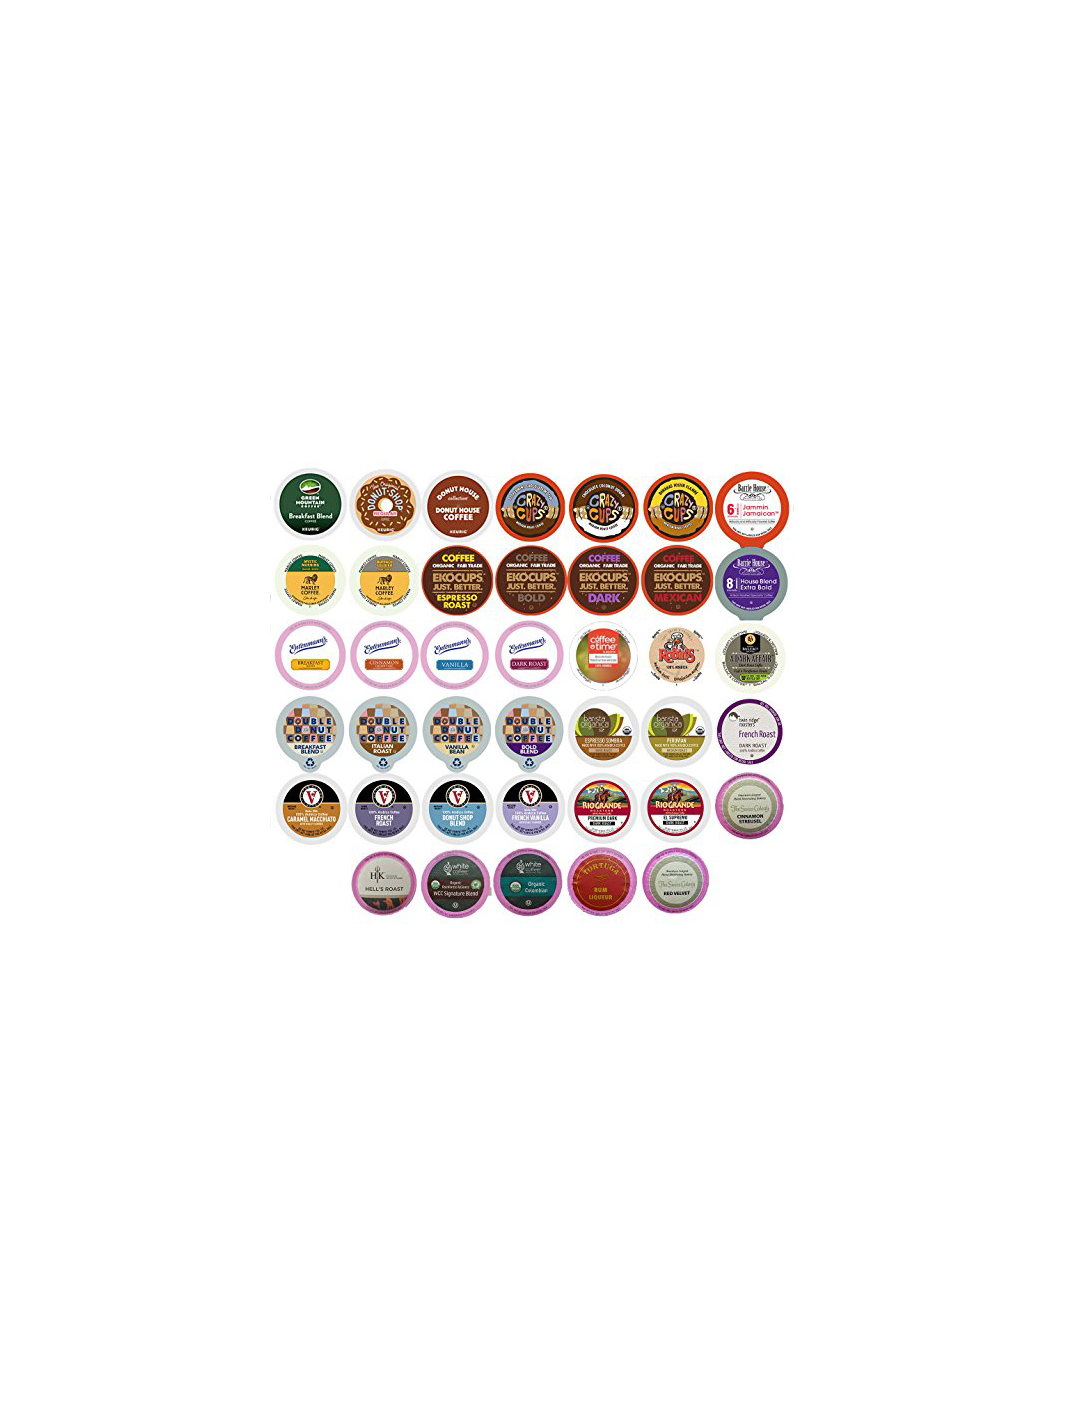 Coffee Variety Sampler Pack for Keurig K-Cup Brewers